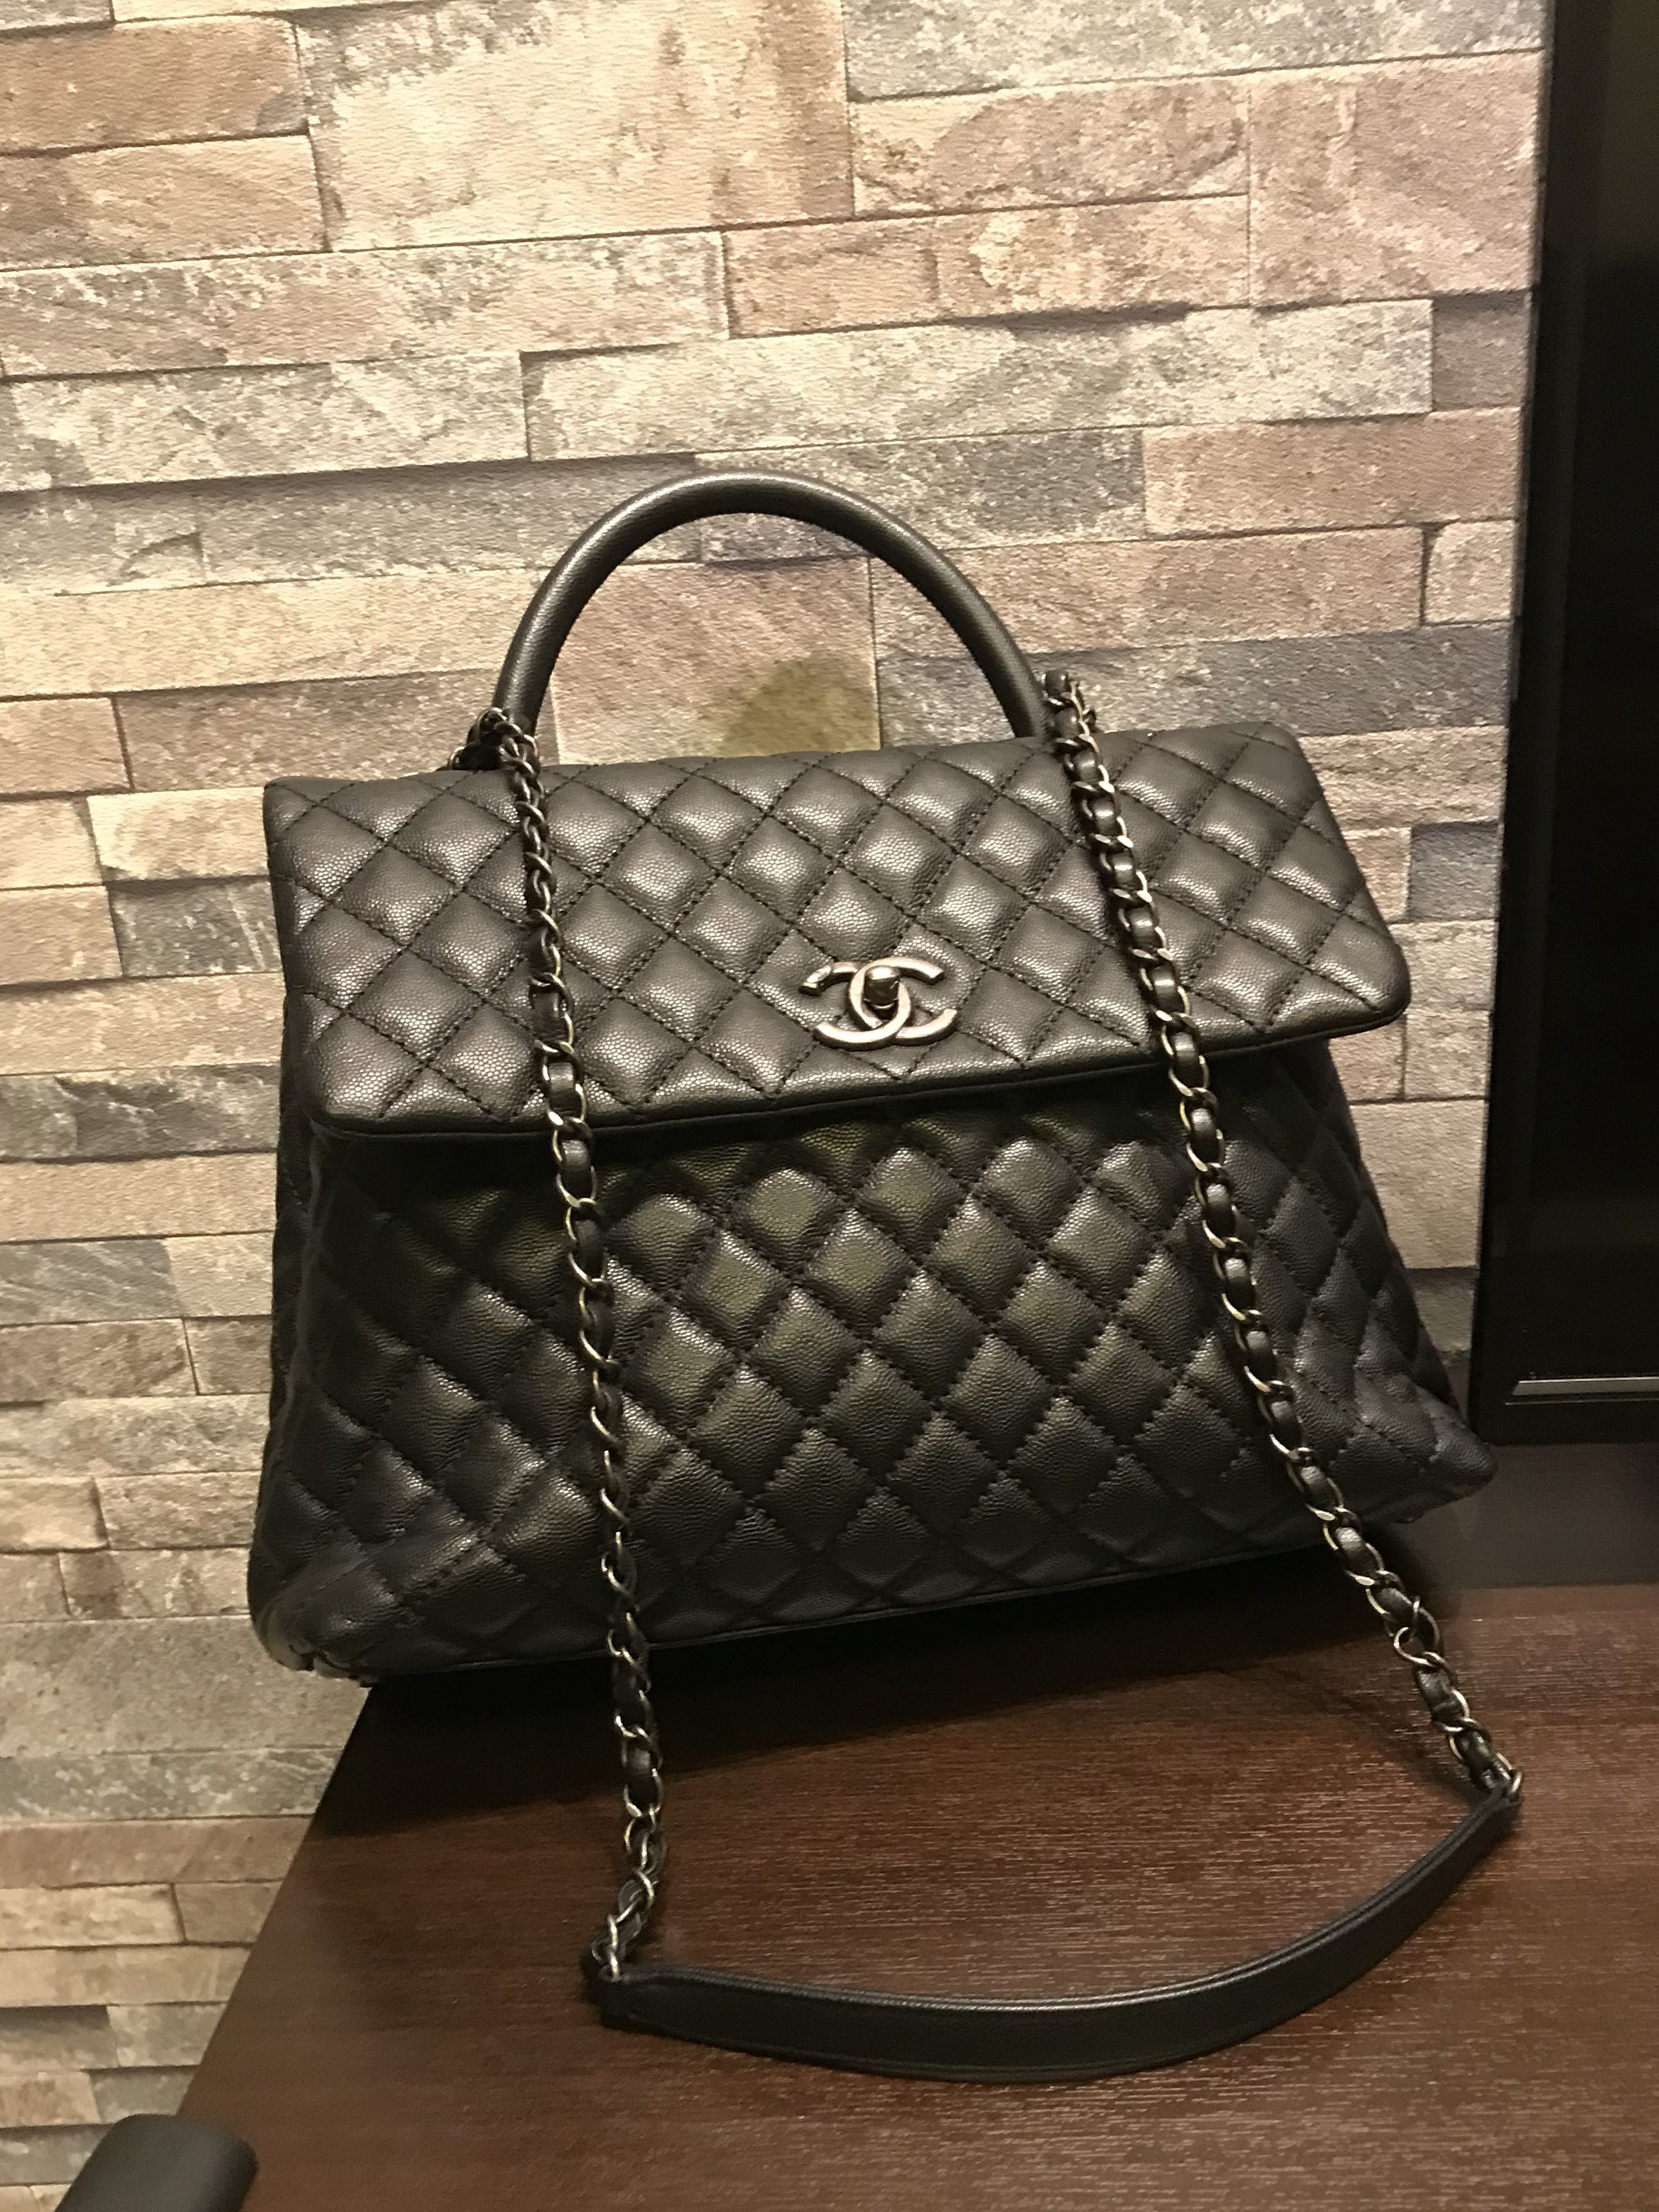 9c8447322ebb Chanel coco handle black large caviar rhw, Luxury, Bags & Wallets on  Carousell